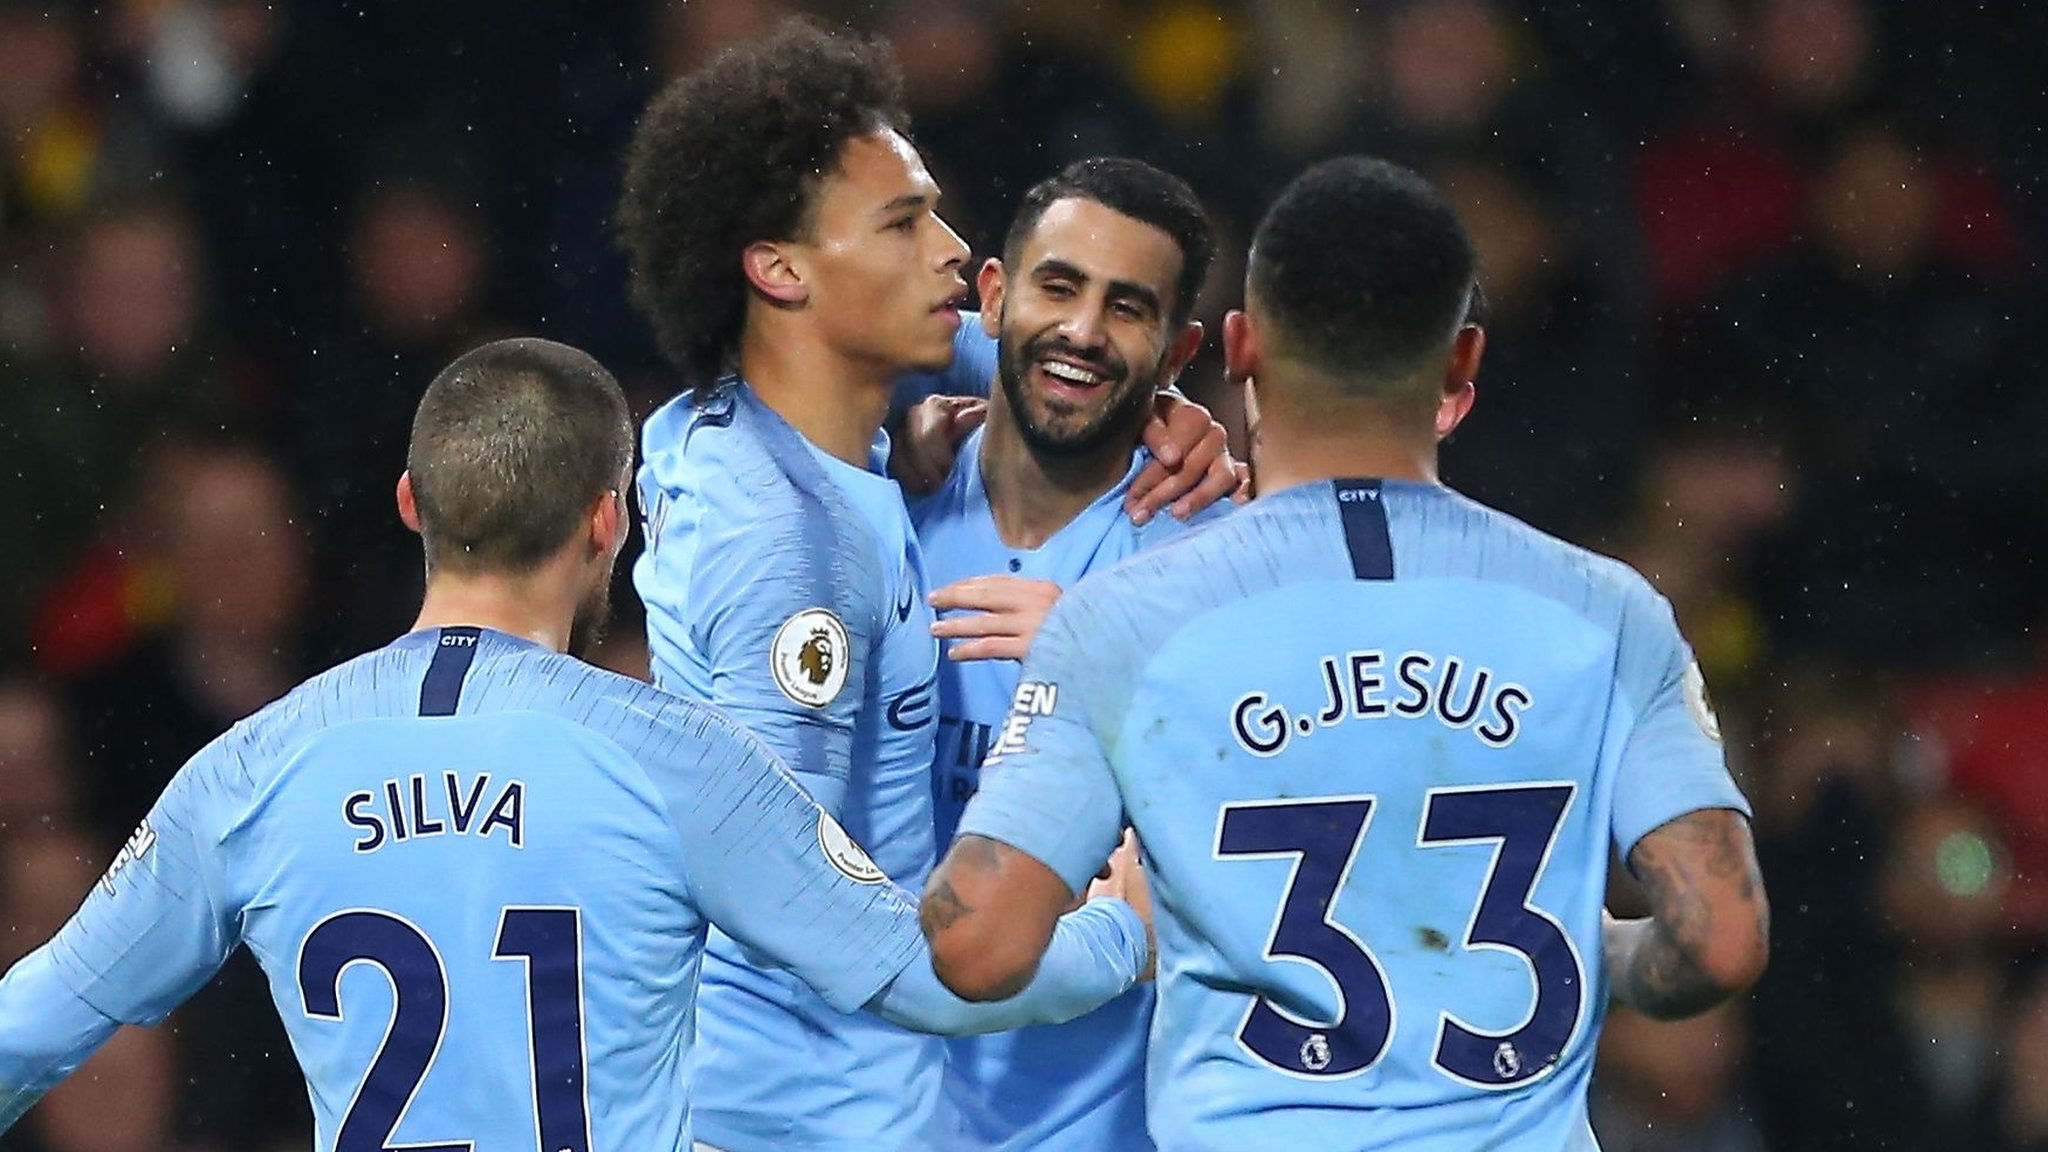 Man City win at Watford to give five points clear